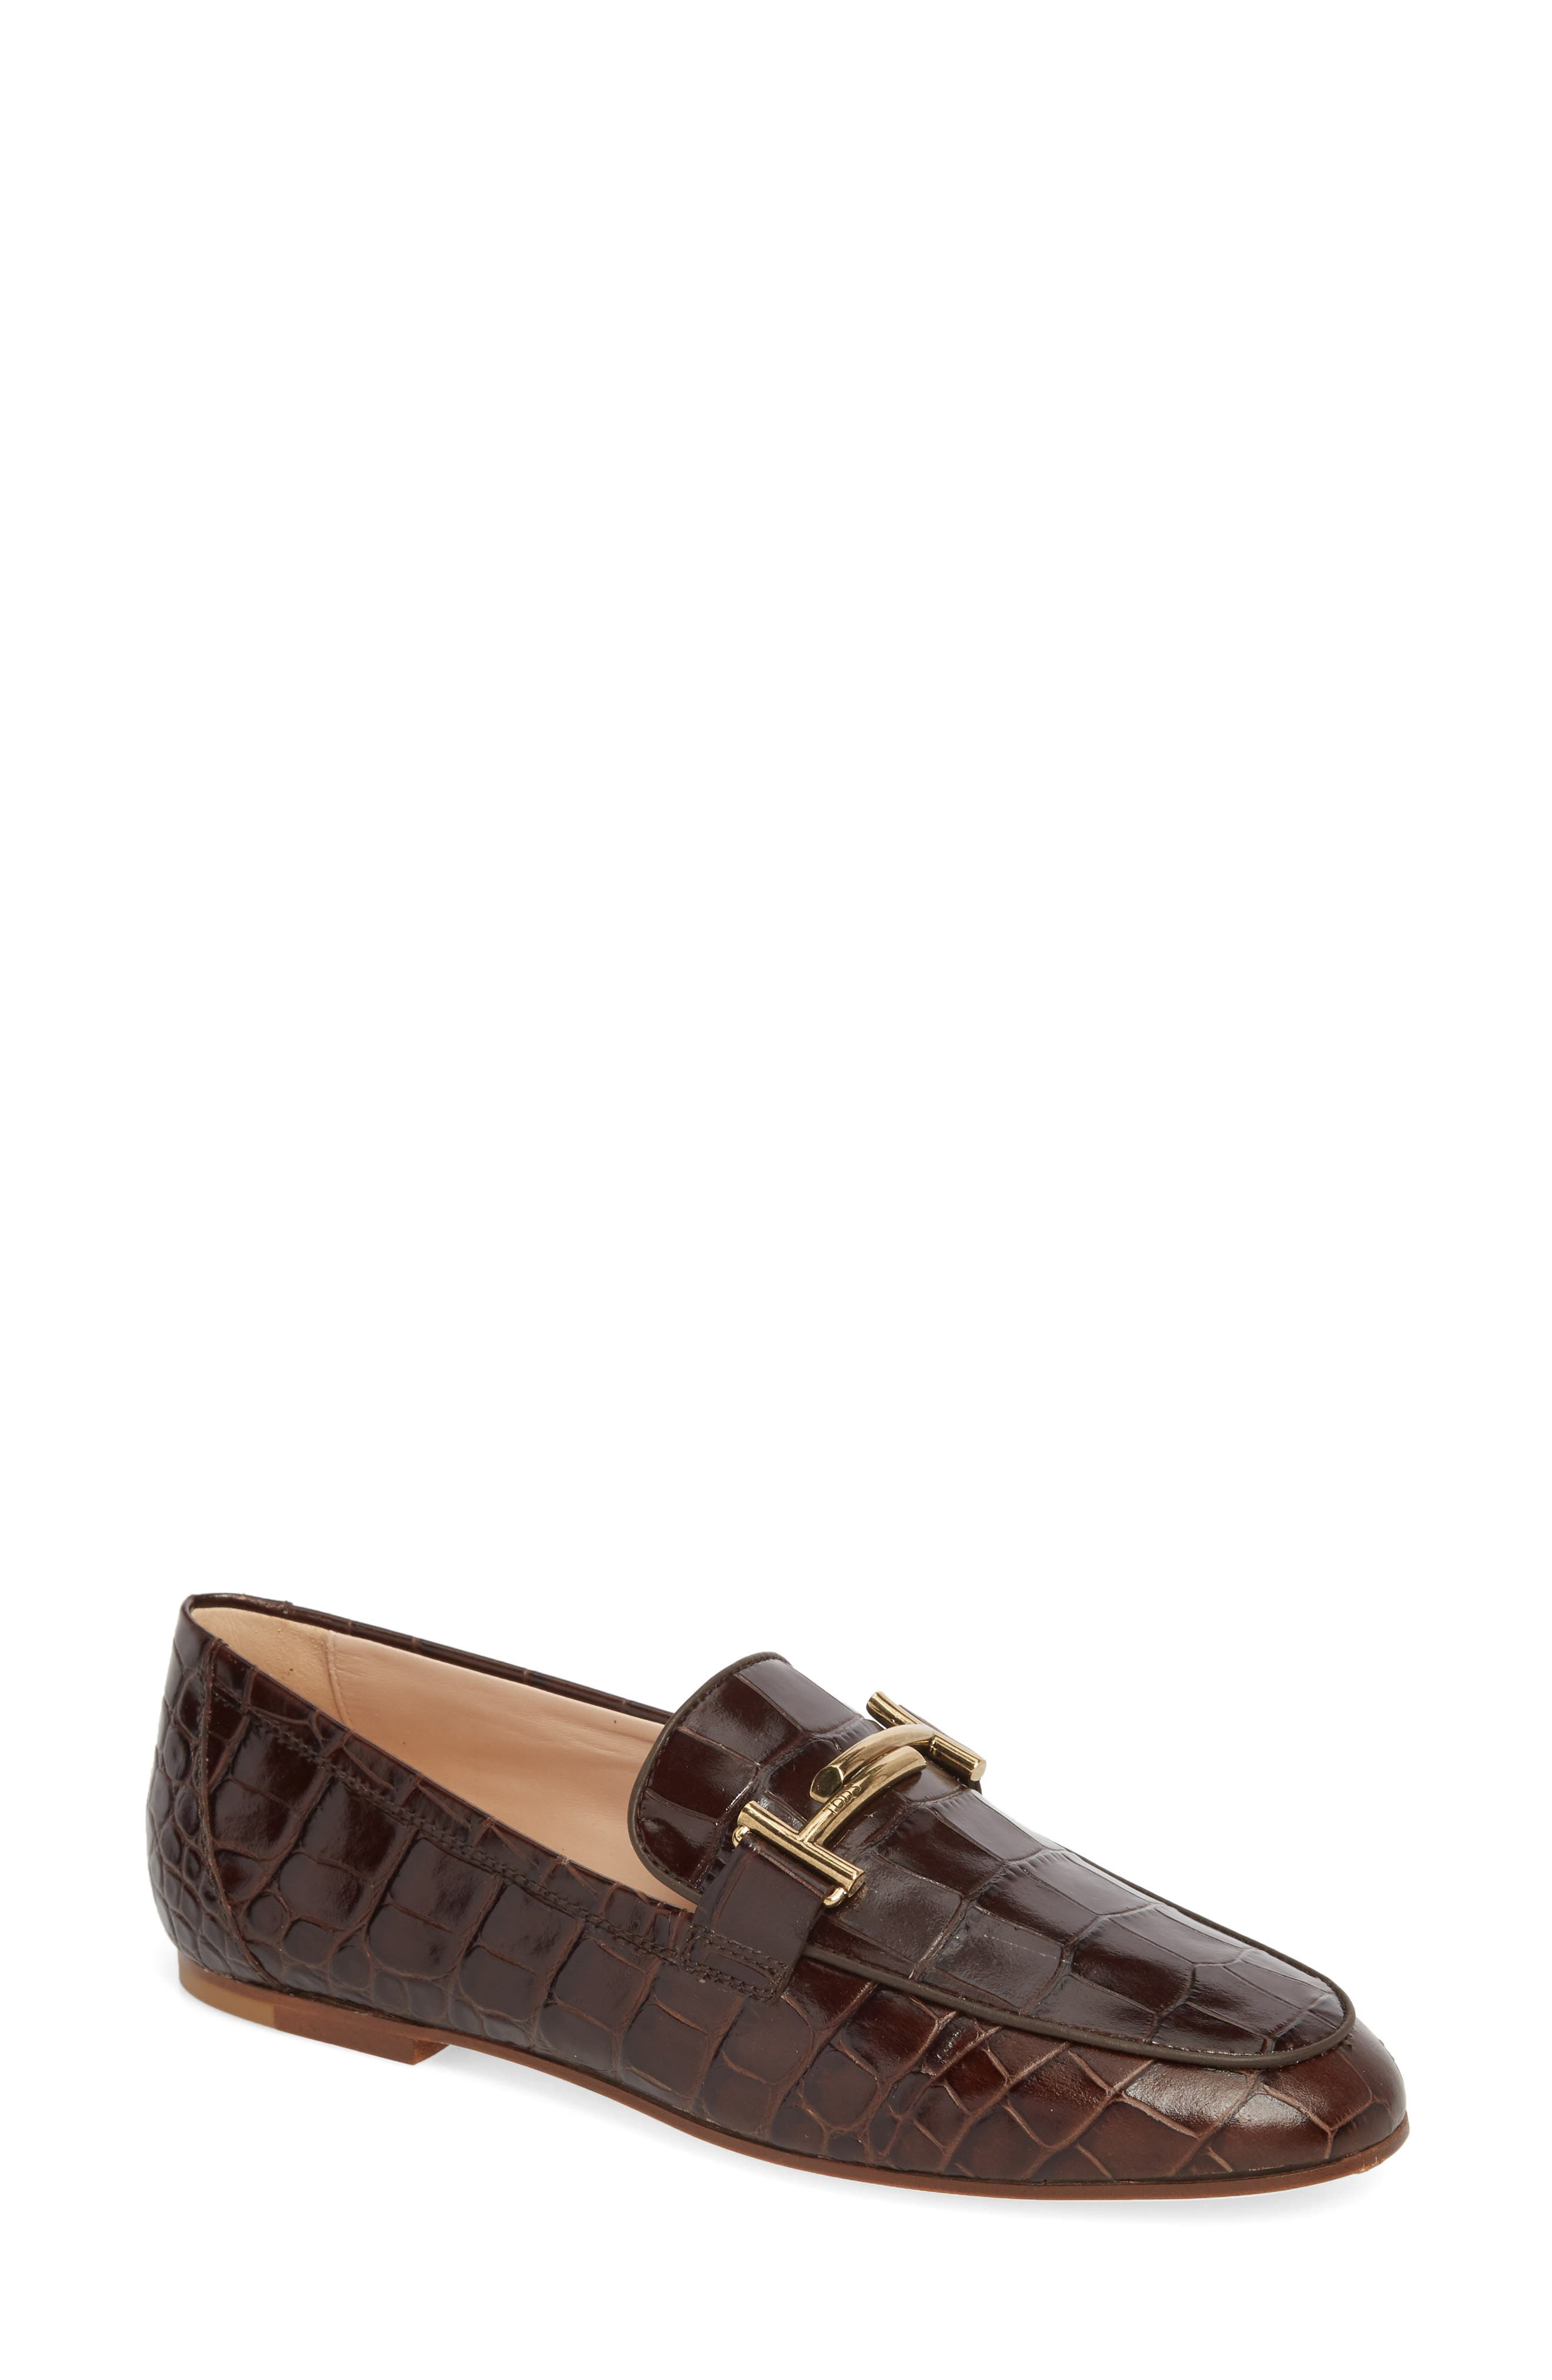 Double-T Printed Loafer in Brown